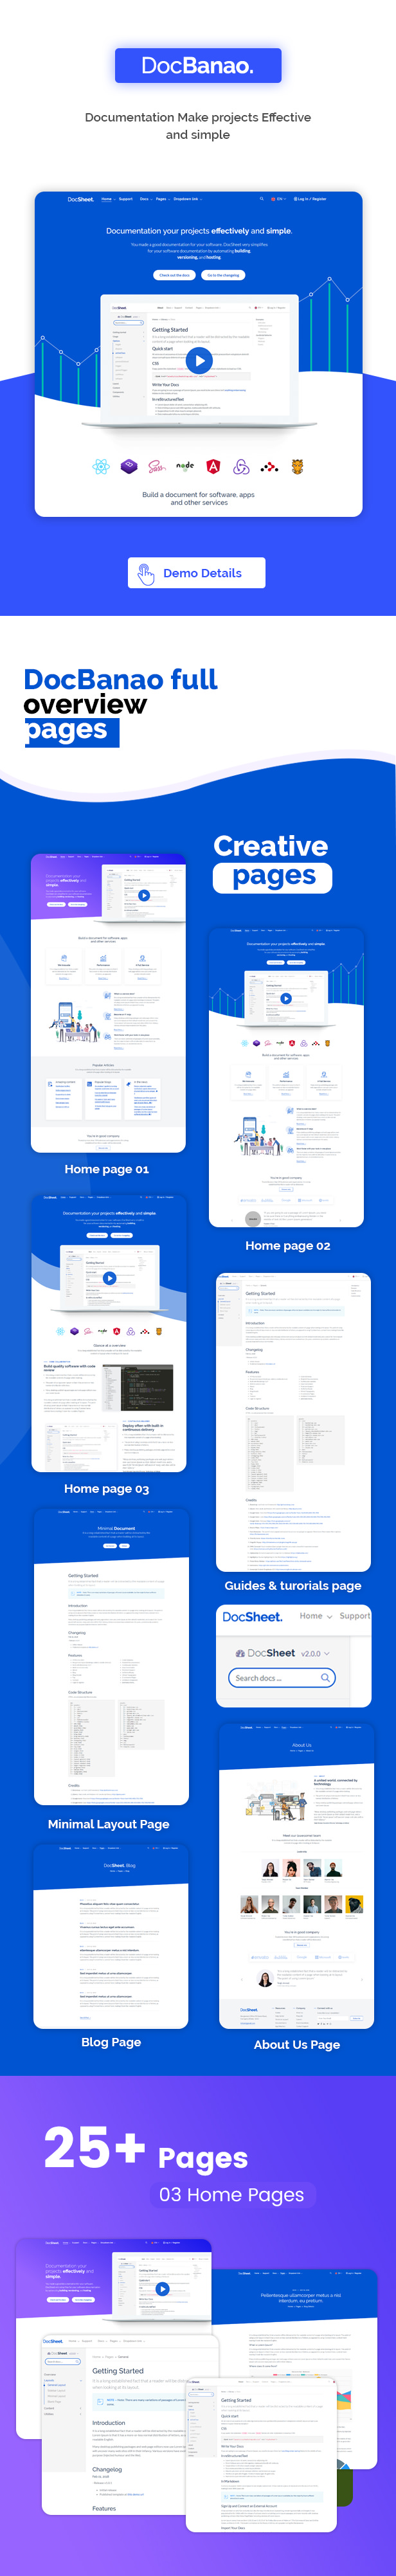 Docbanao Software Documentation Generator Html Template By Bdtask